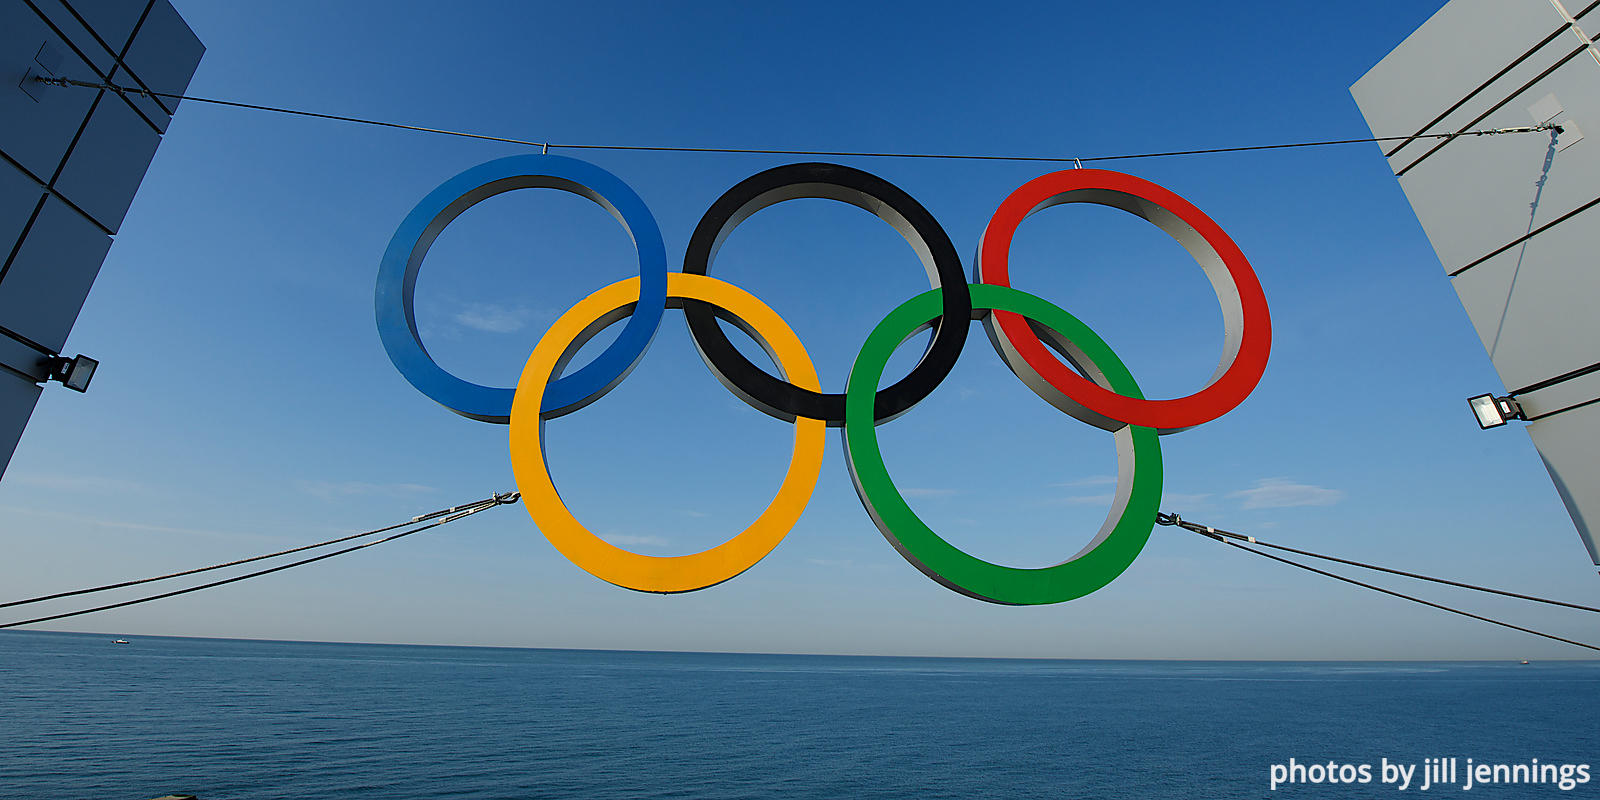 The Olympics photos